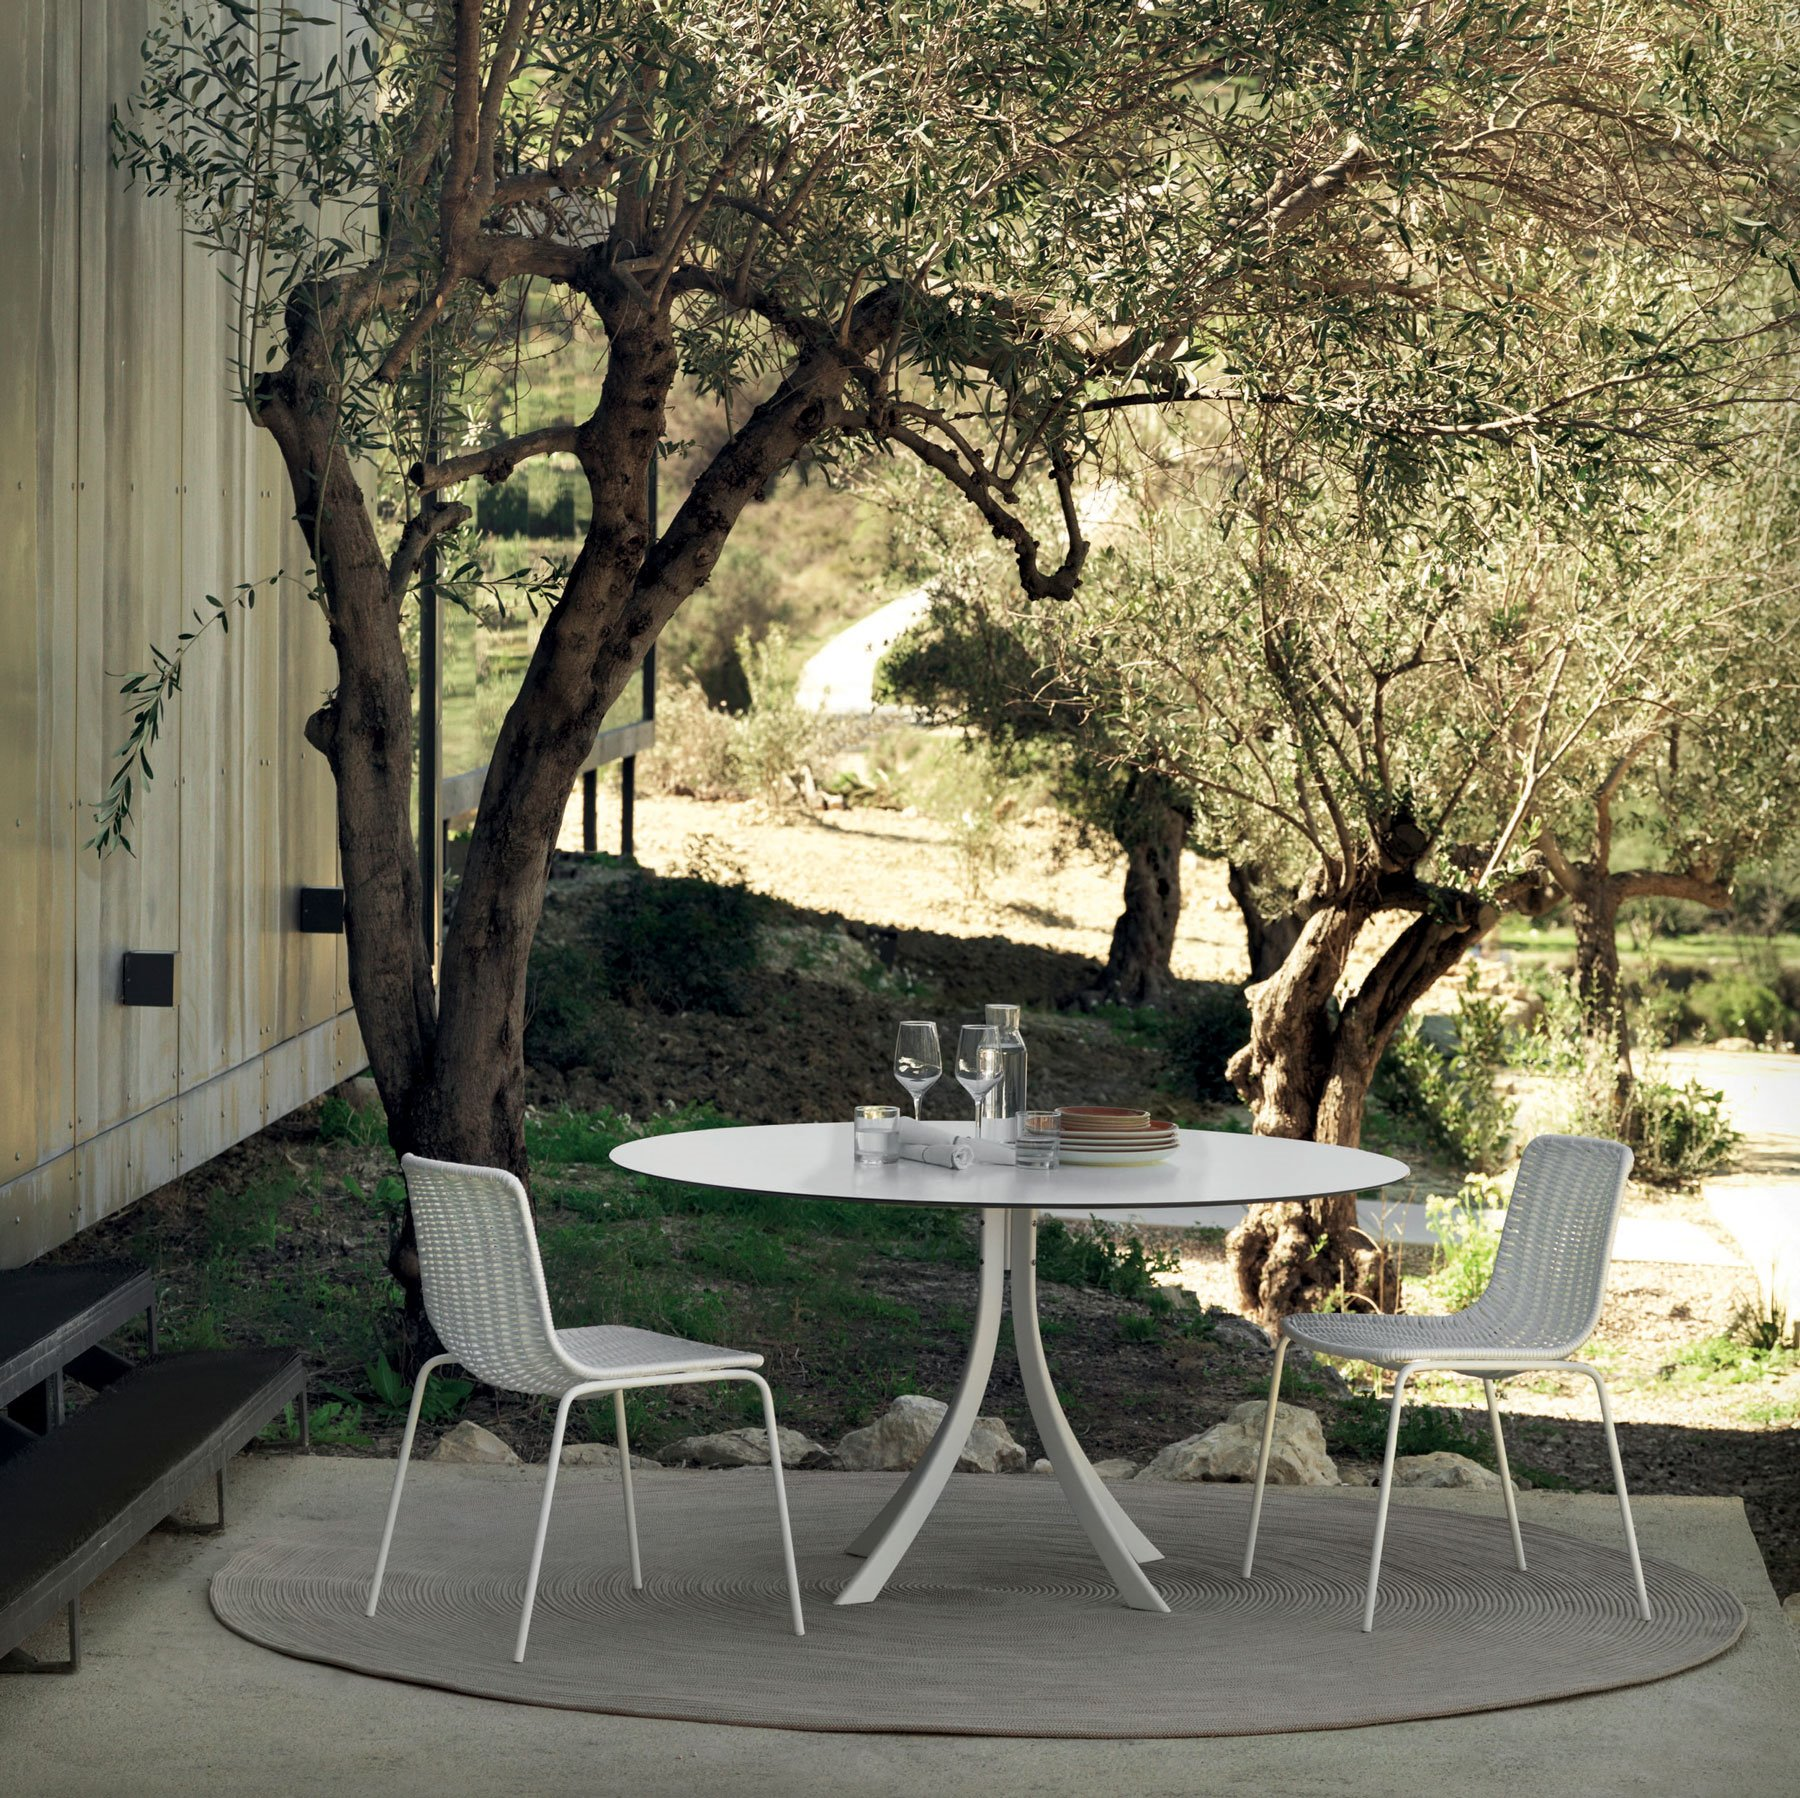 EXPORMIM falcata-outdoor-dining-table-lievore-altherr-molina-expormim-furniture-outdoor-05